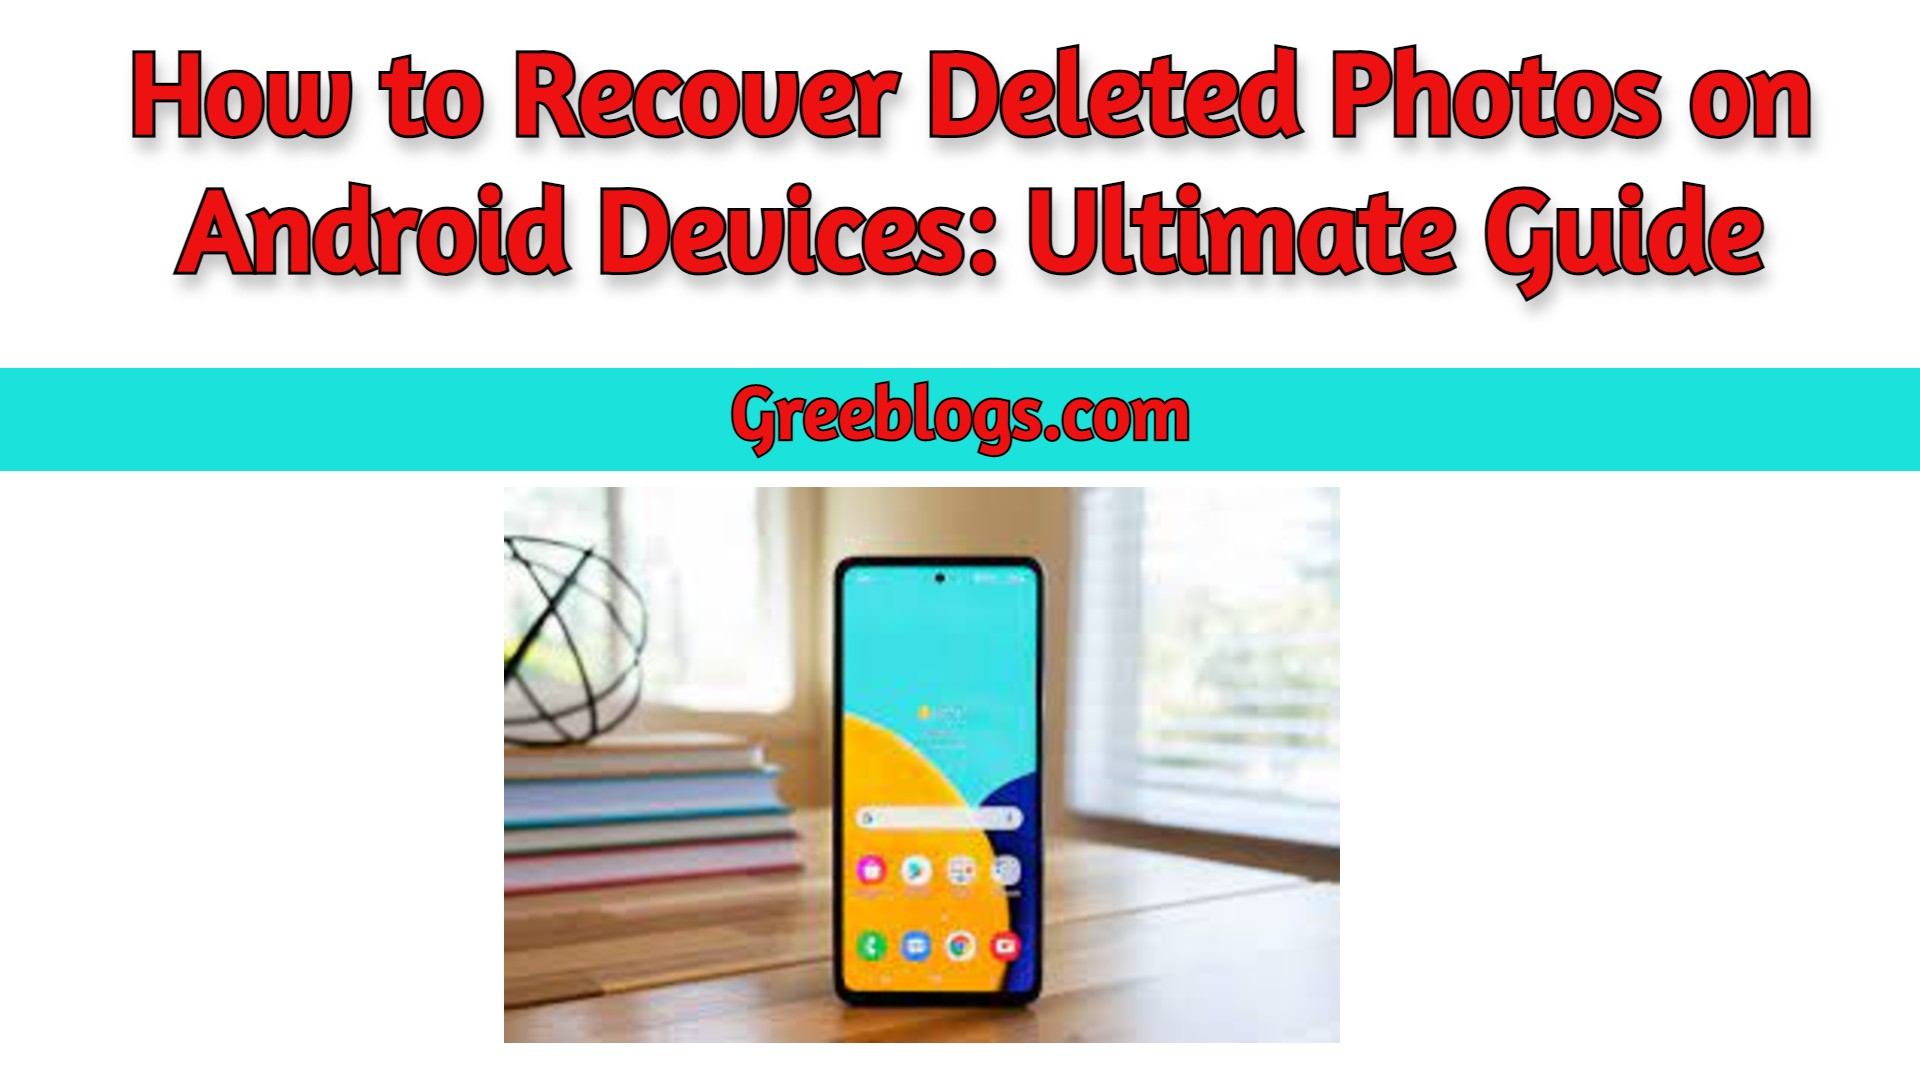 How to Recover Deleted Photos on Android Devices: Ultimate Guide